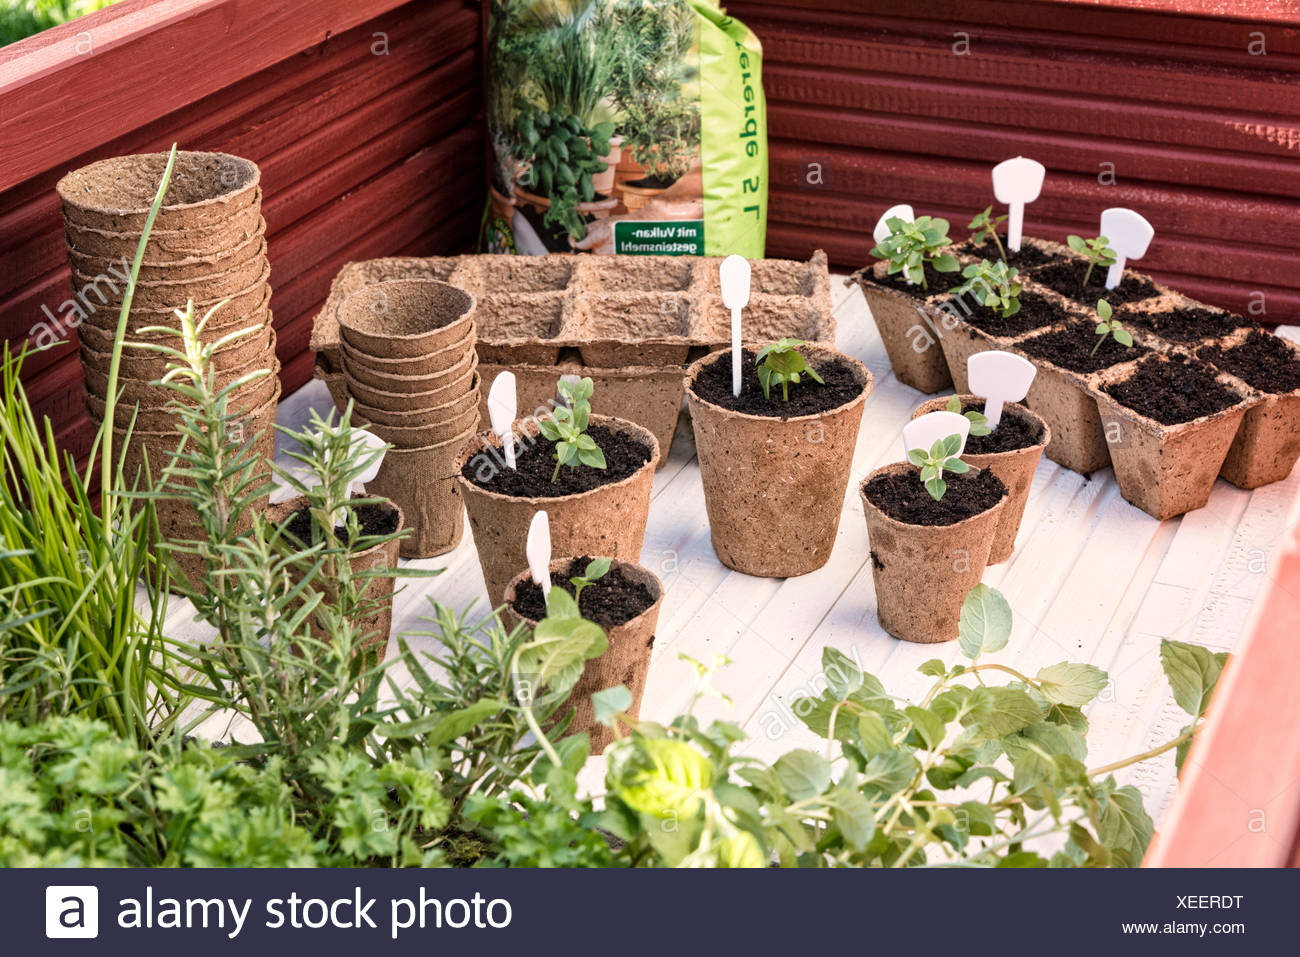 table for plants, herbs, seedlings, - Stock Image